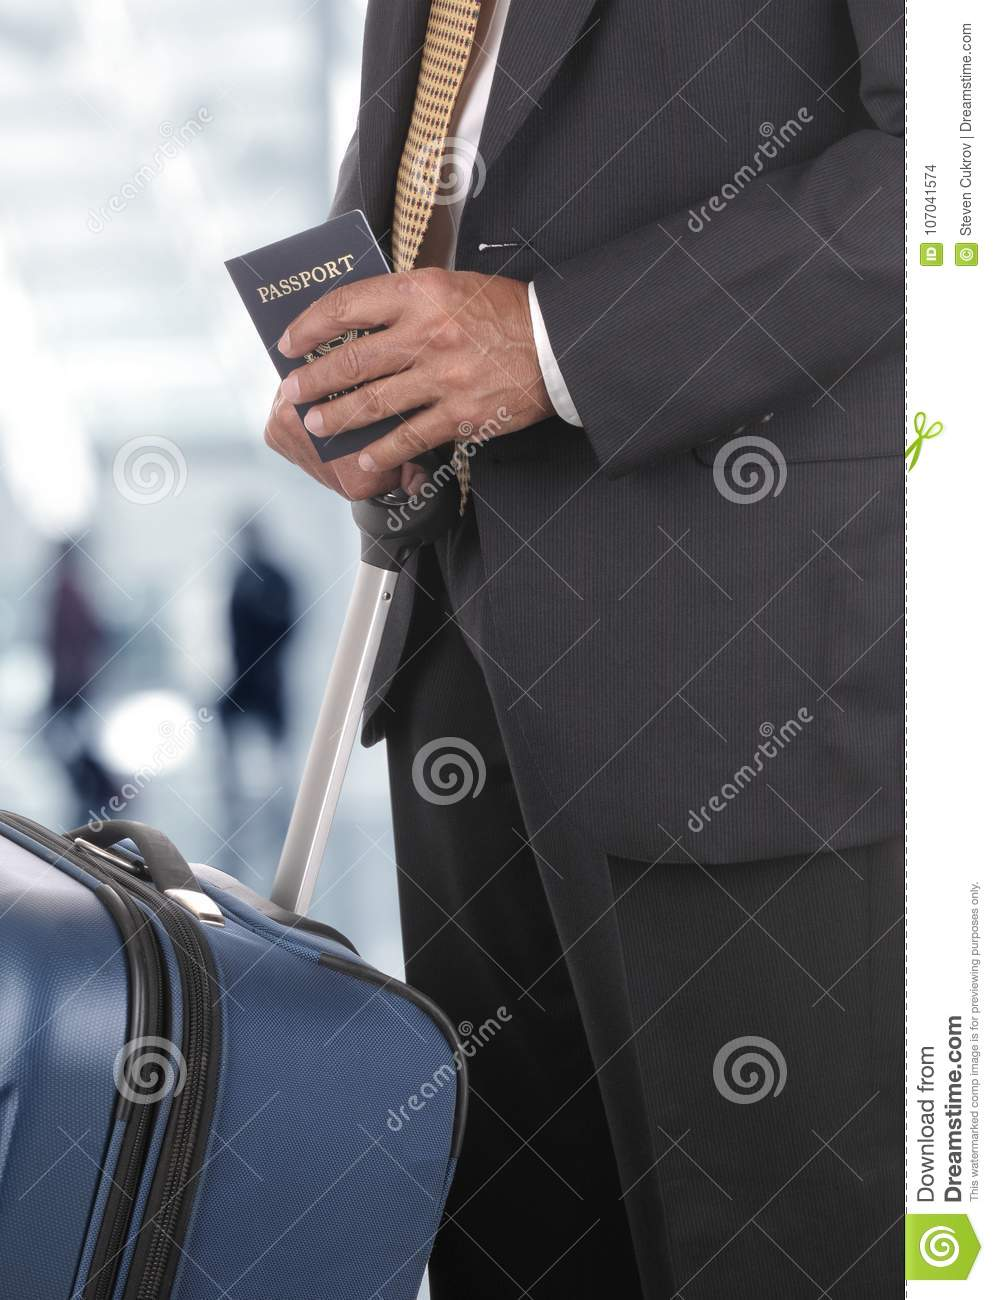 businessman luggage passport blurred travelers in airport concou